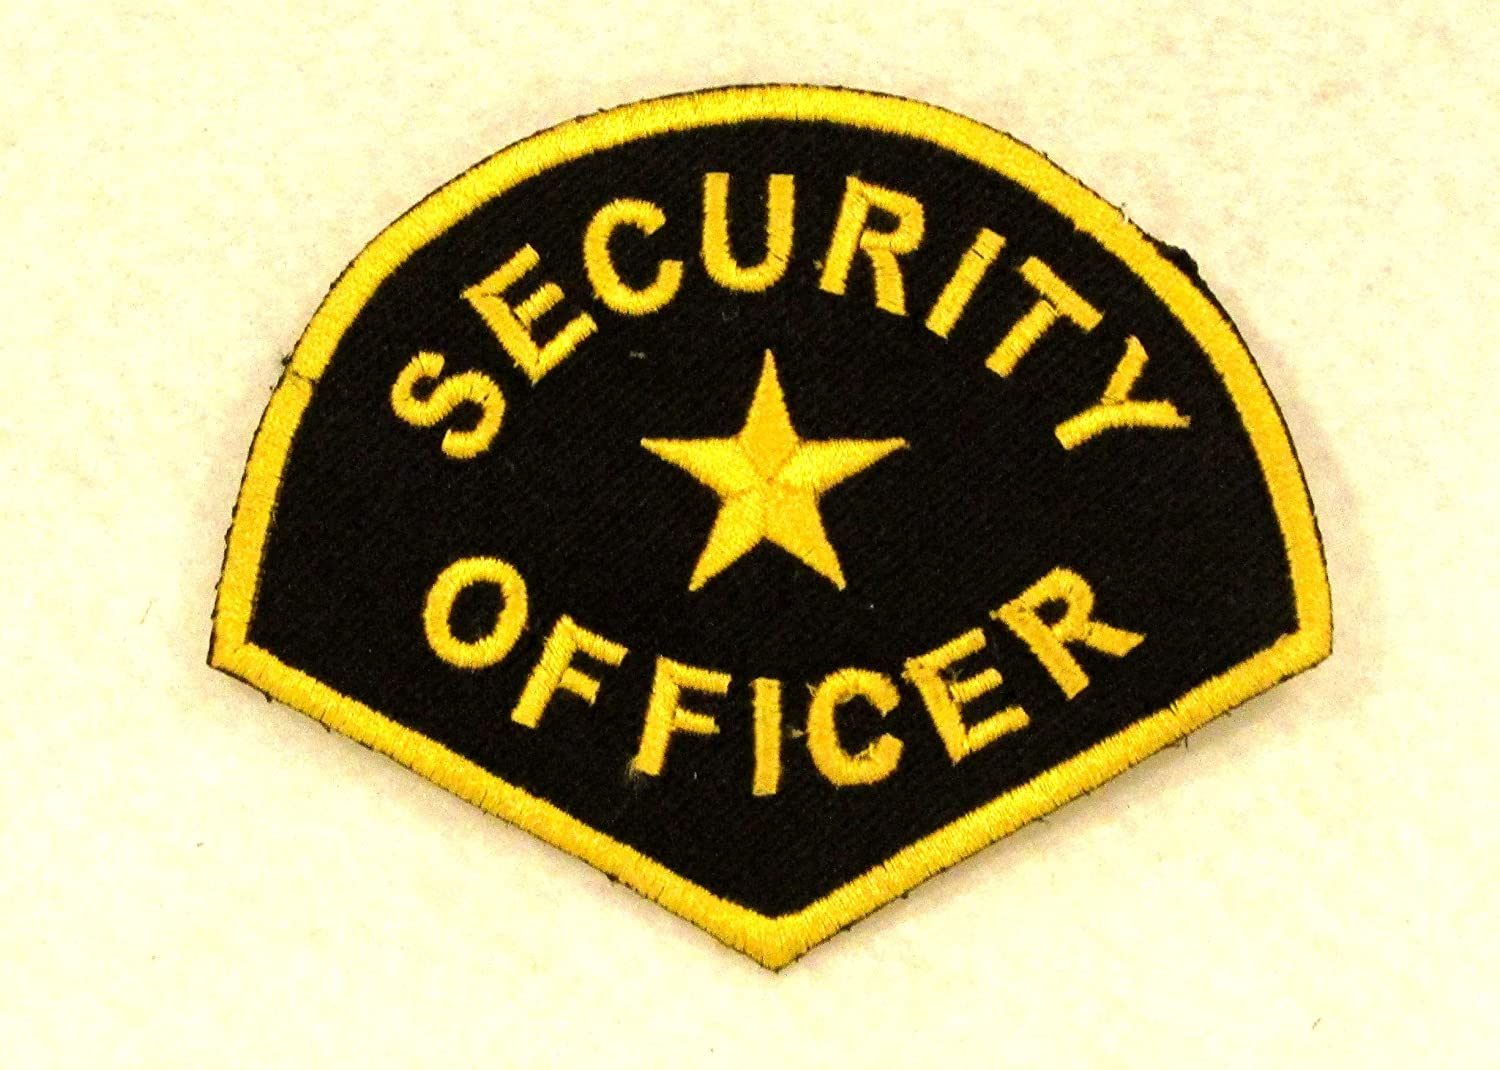 Security Officer Yellow On Black Small Patch for Jacket Vest